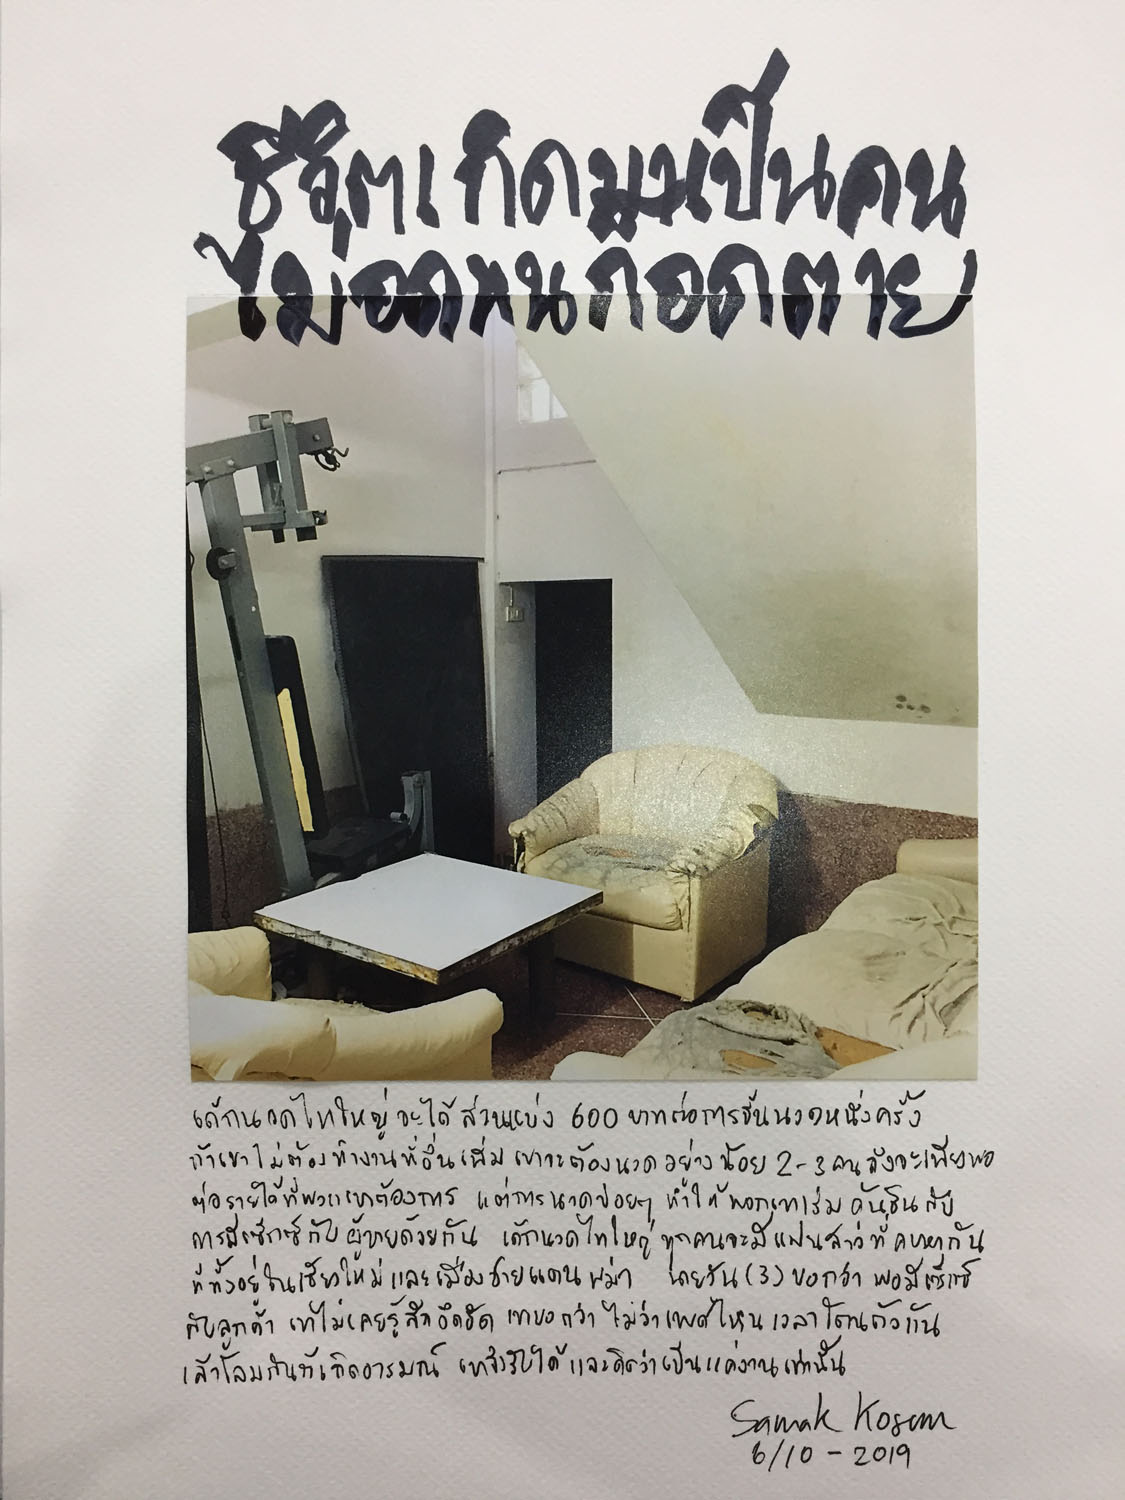 Borders re/make Bodies: Chiang Mai Ethnography - Ethnography of the House No. 6